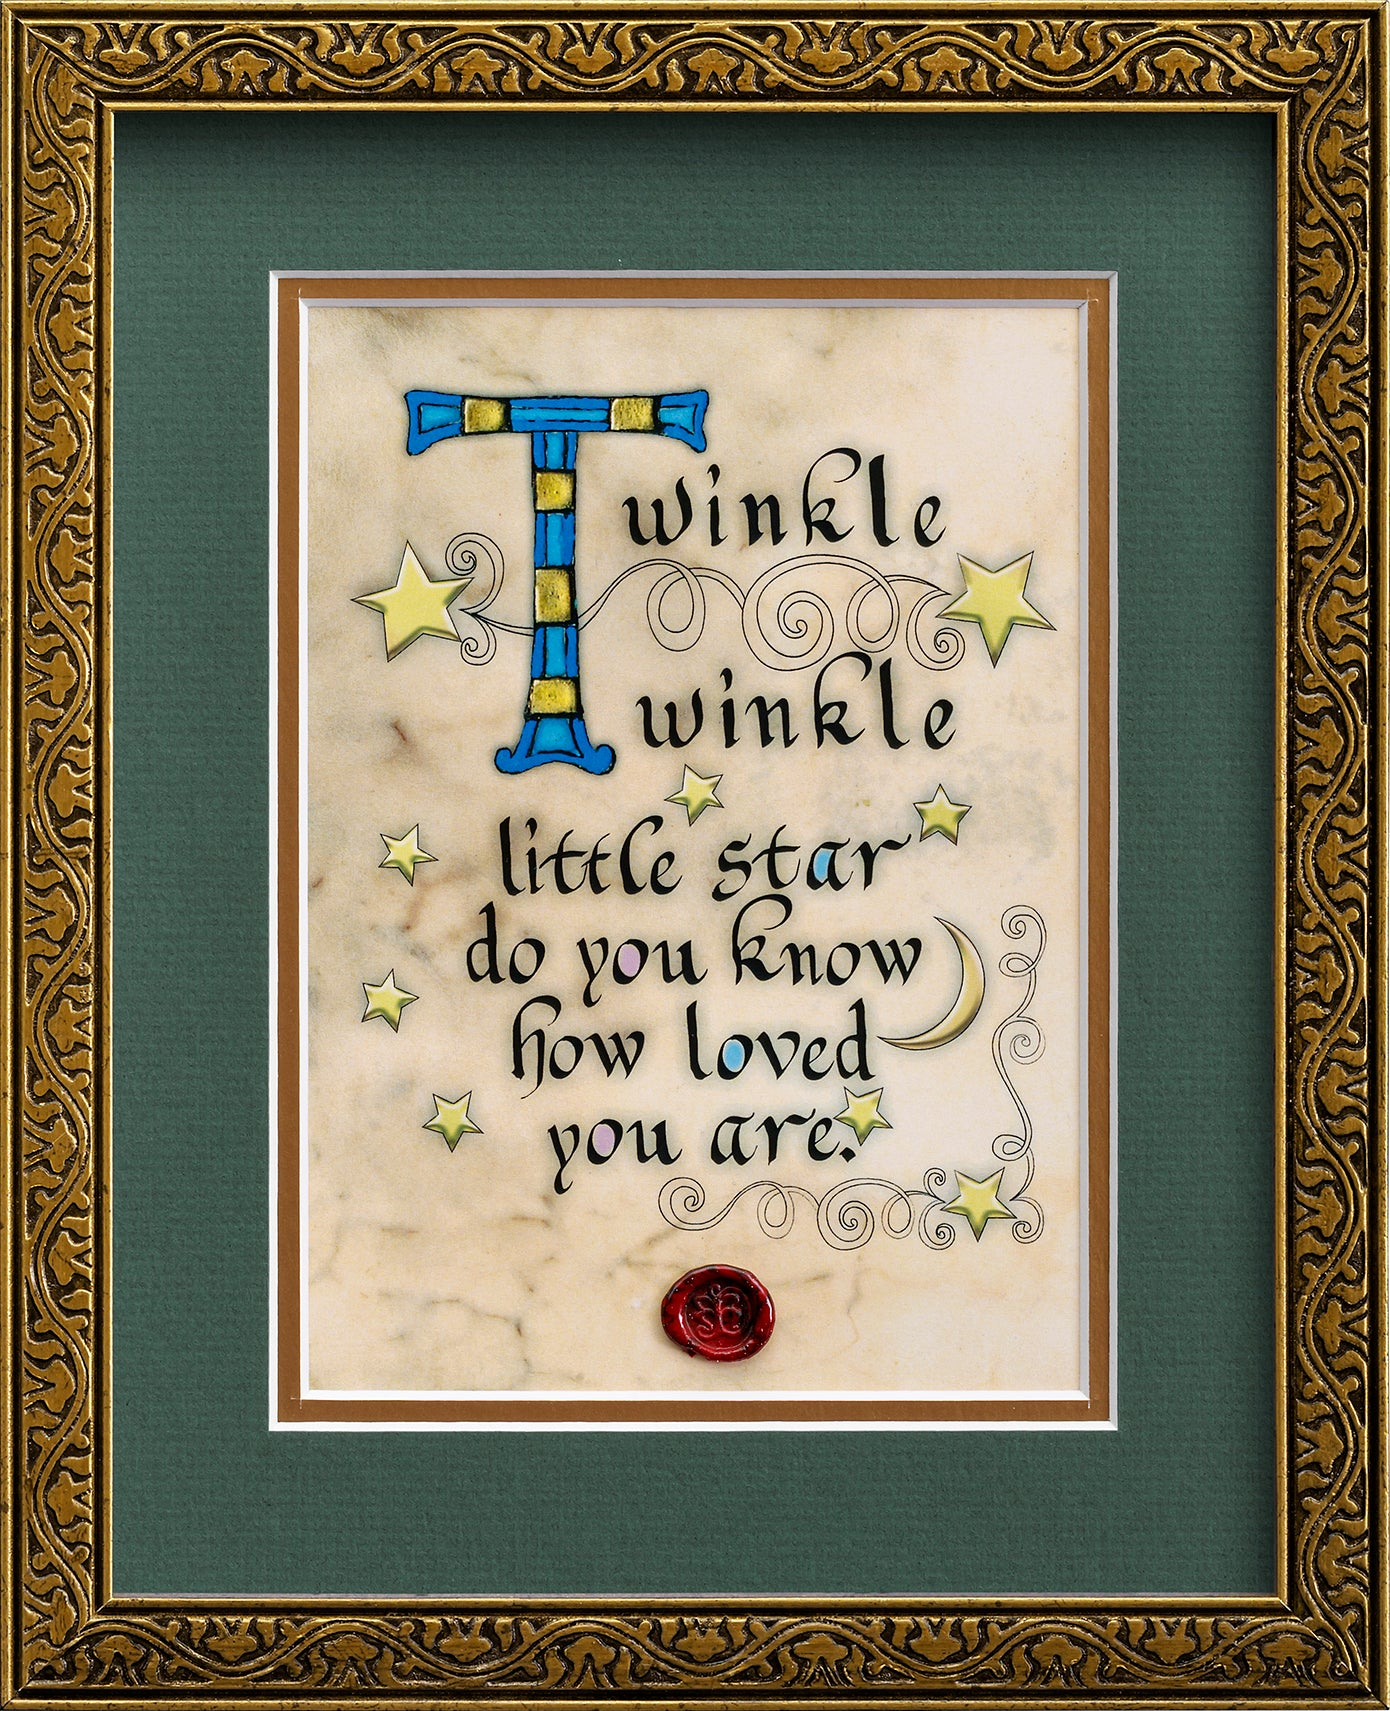 Twinkle Twinkle Little Star- Framed Celtic Art Print